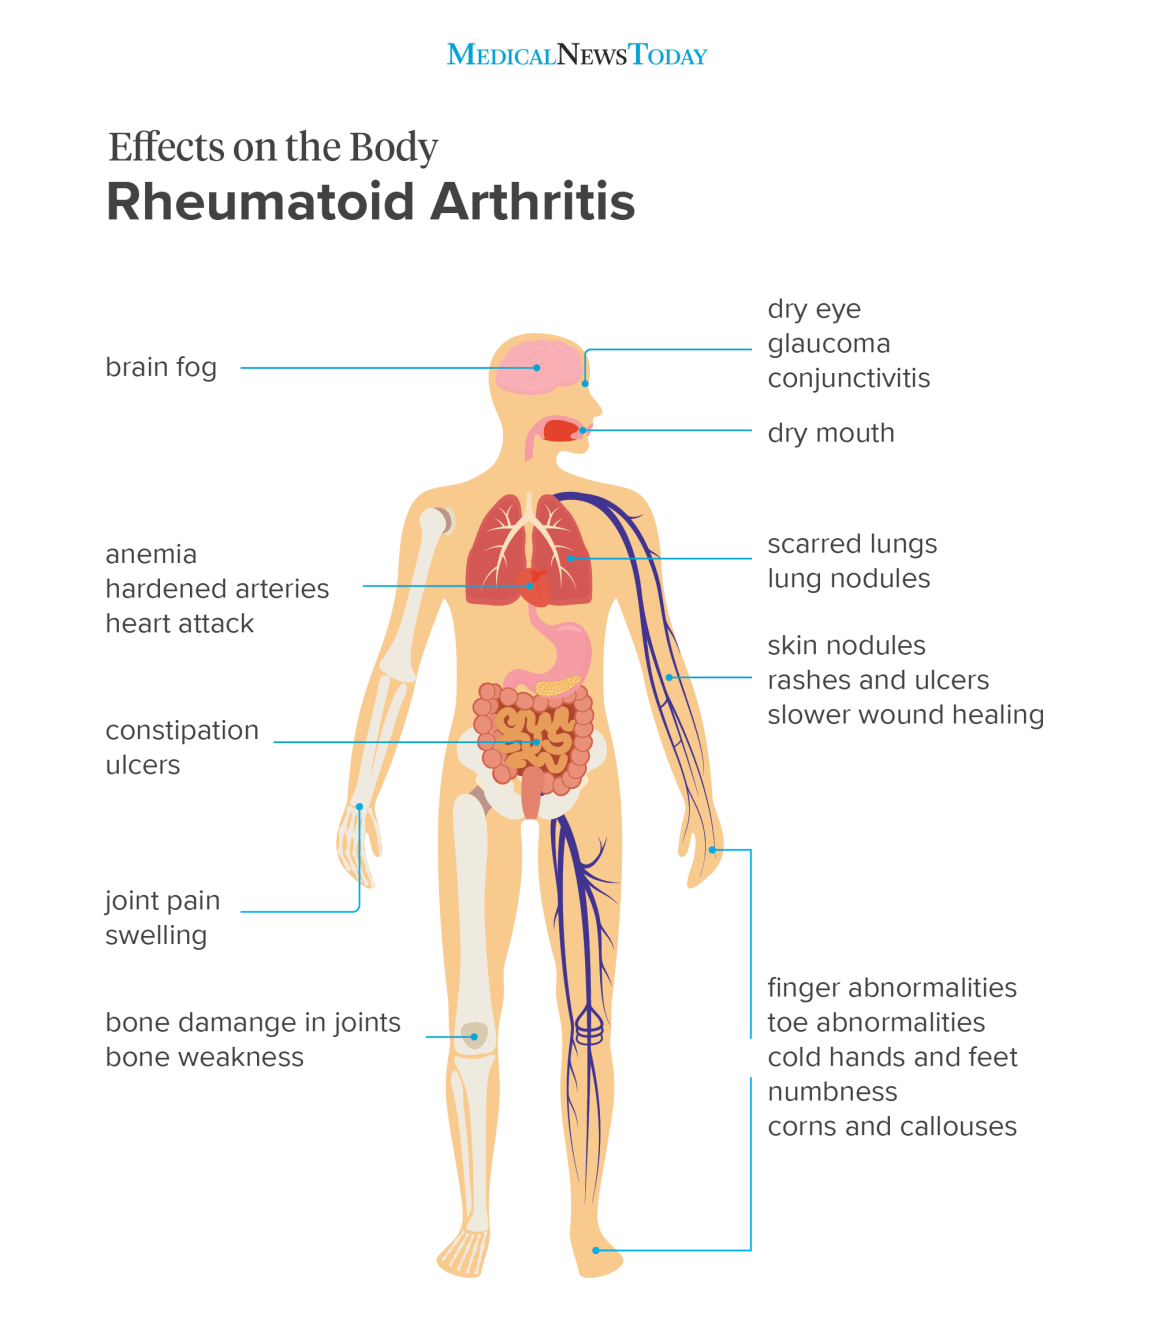 an infographic showing the effects on the body of Rheumatoid Arthritis